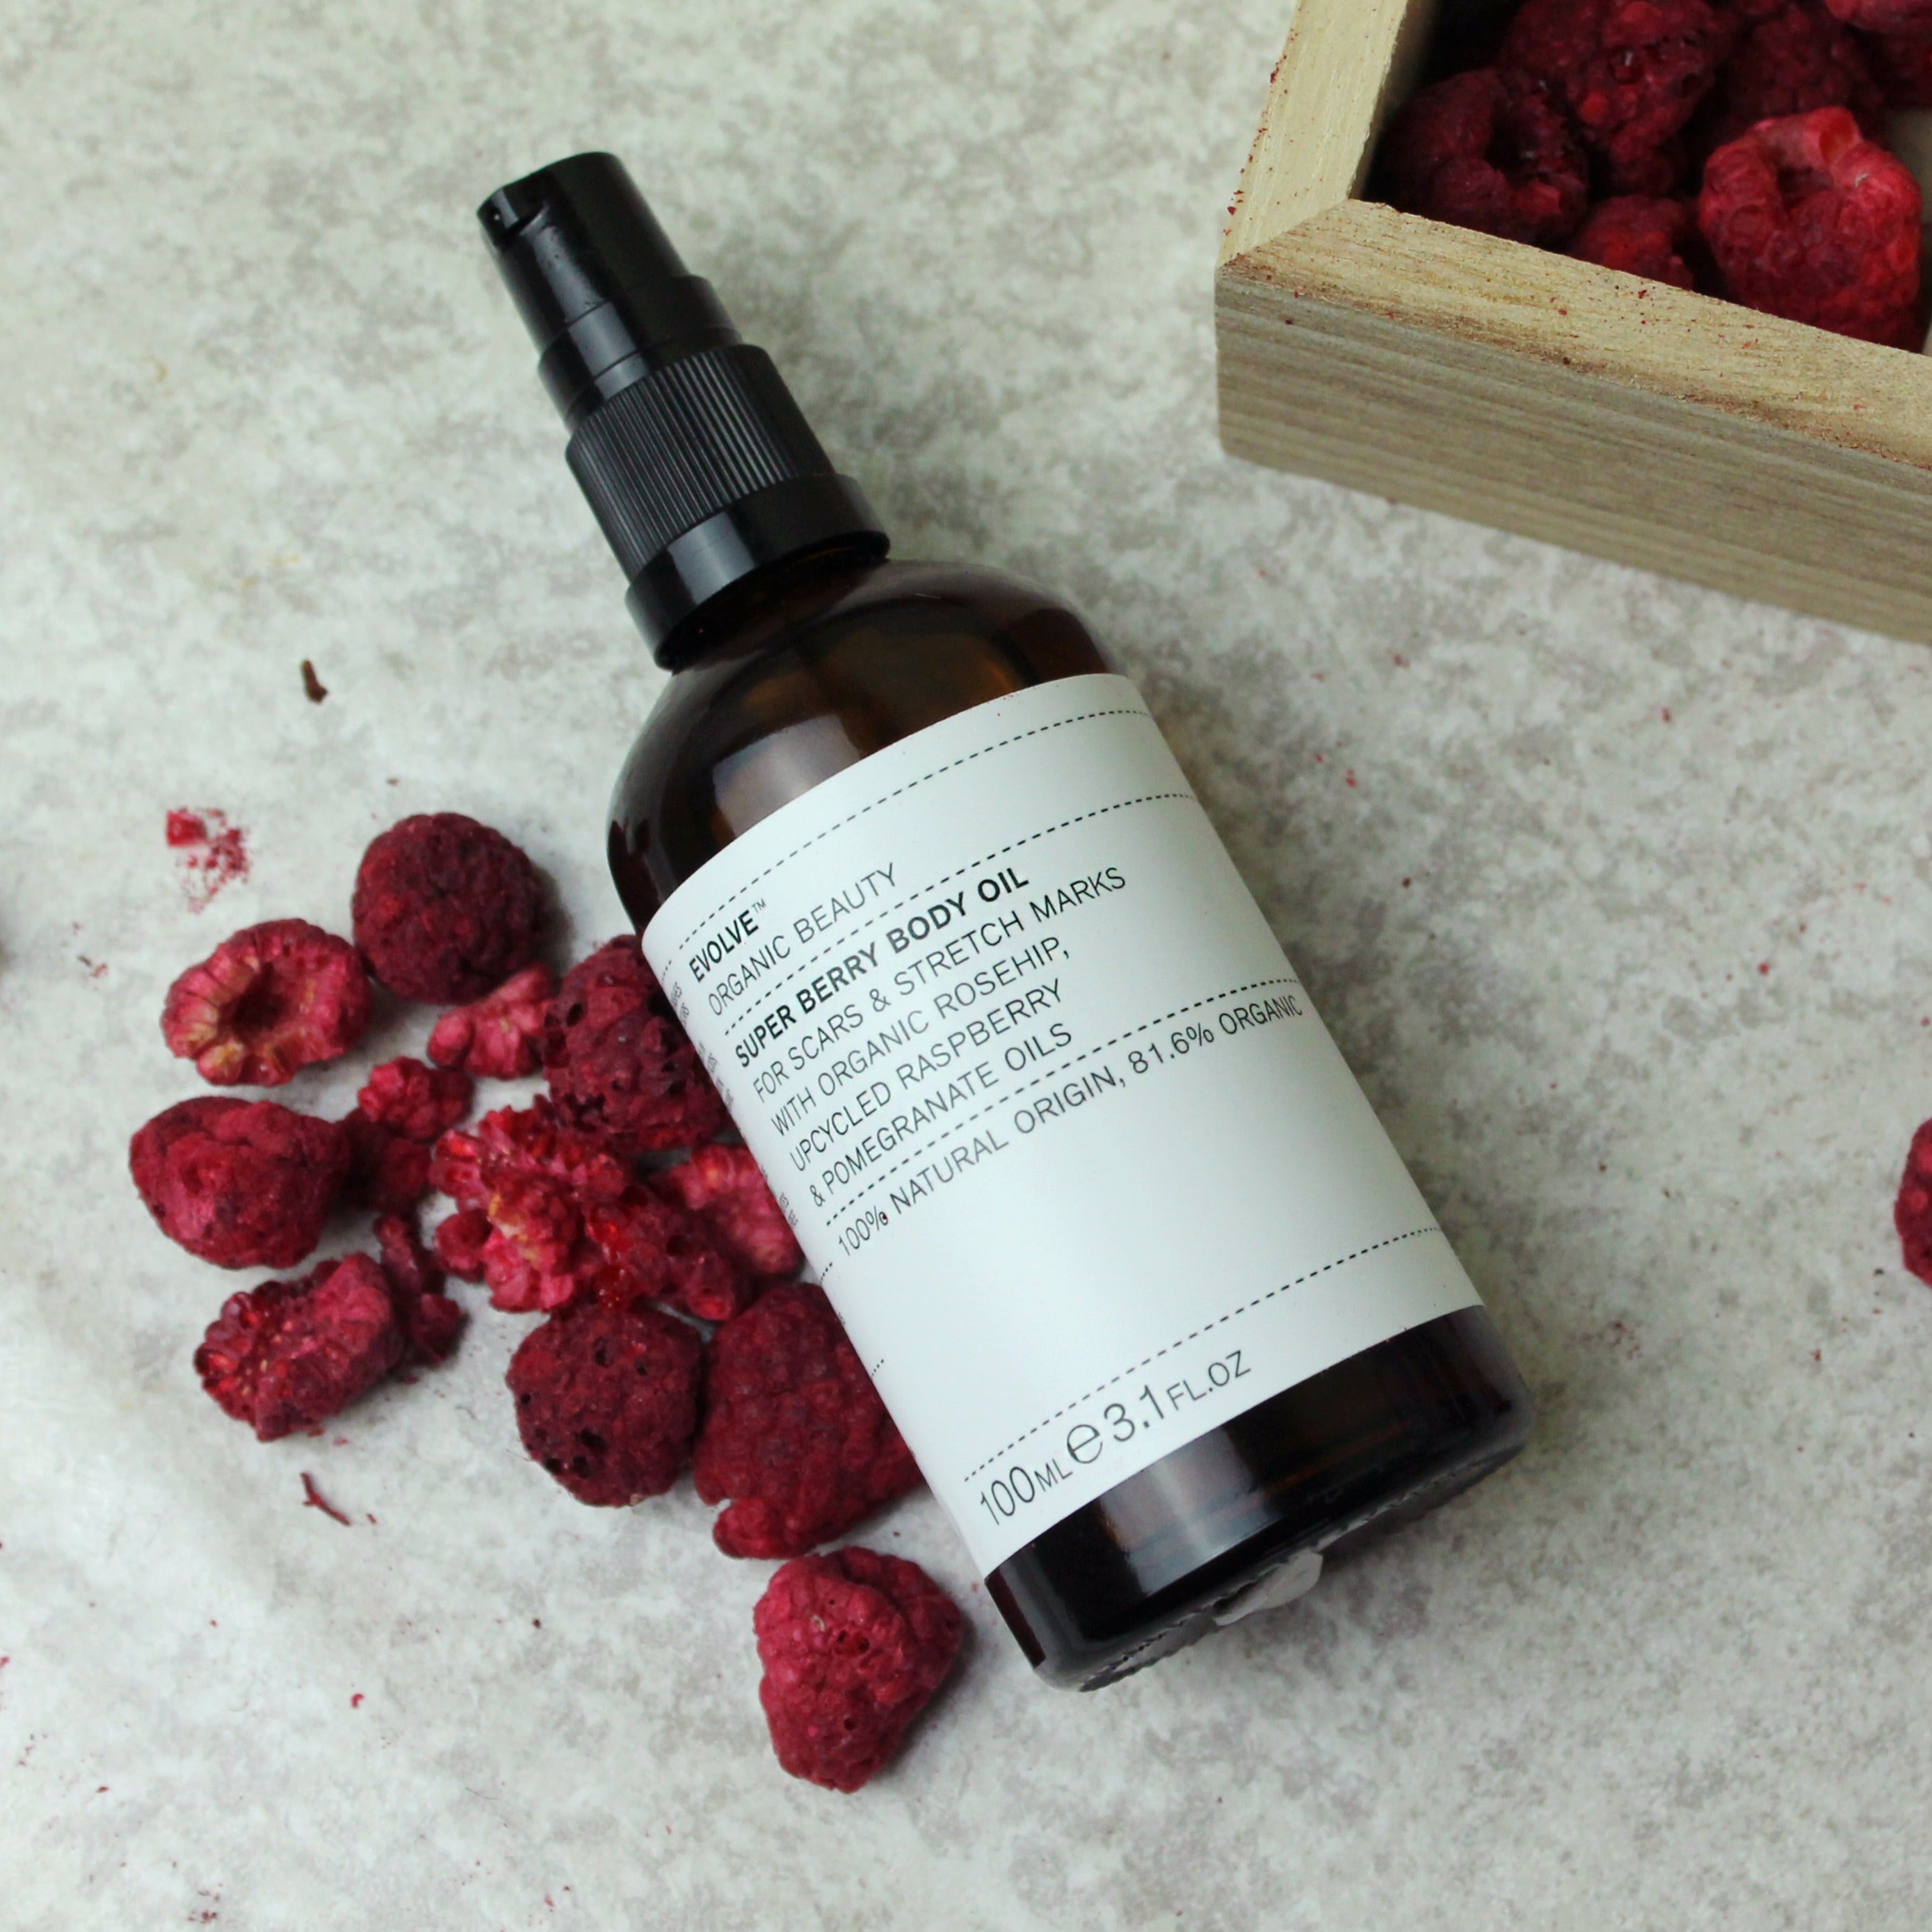 Evolve Beauty - Super Berry Body Oil